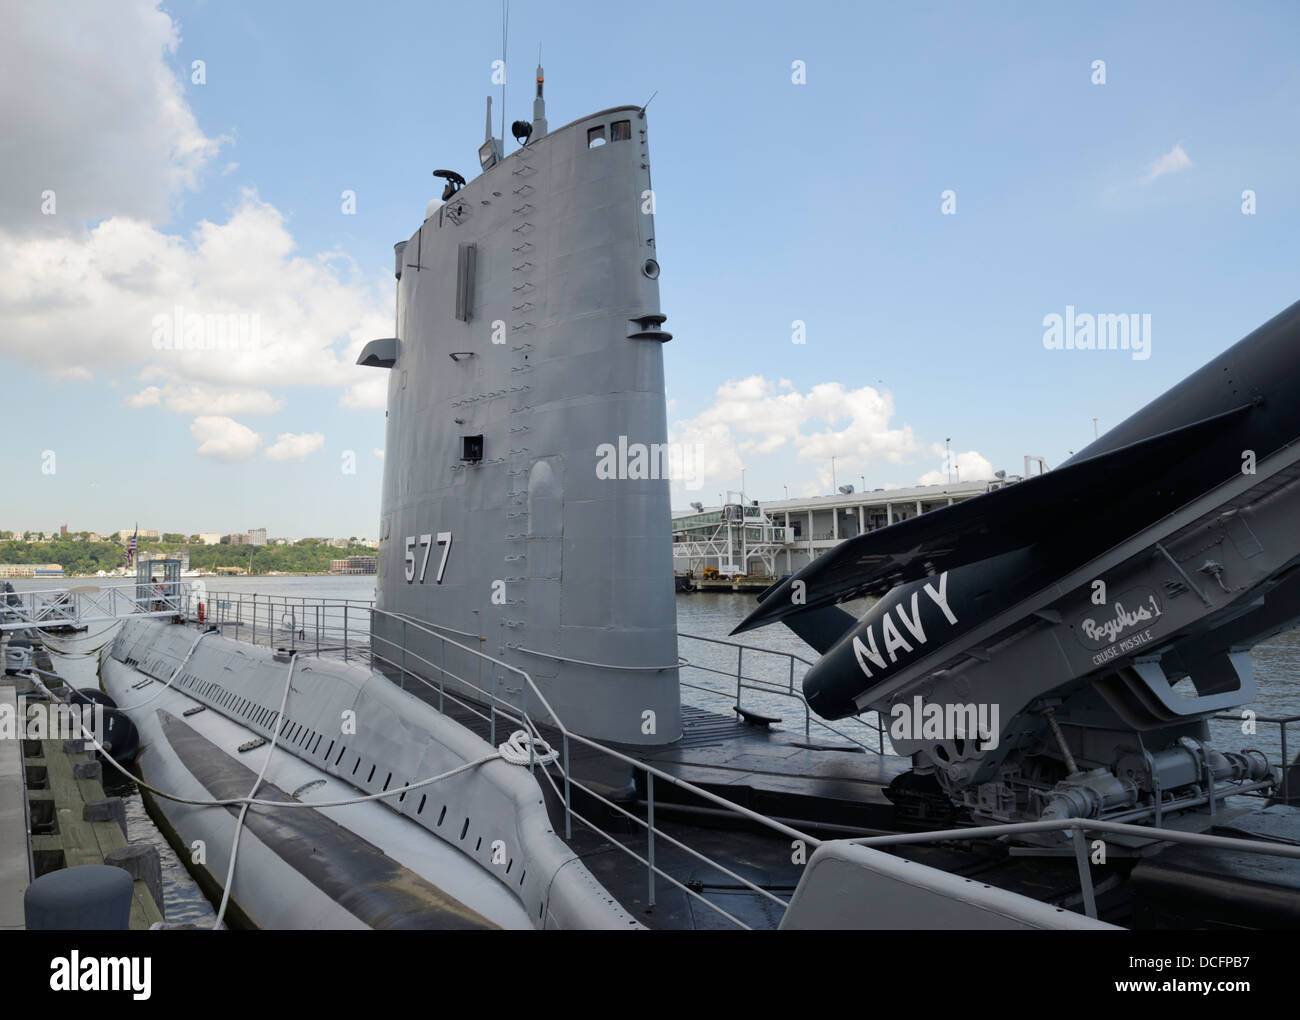 USS Growler (SSG-577), a cruise missile submarine, Intrepid Sea, Air and Space Museum - Stock Image